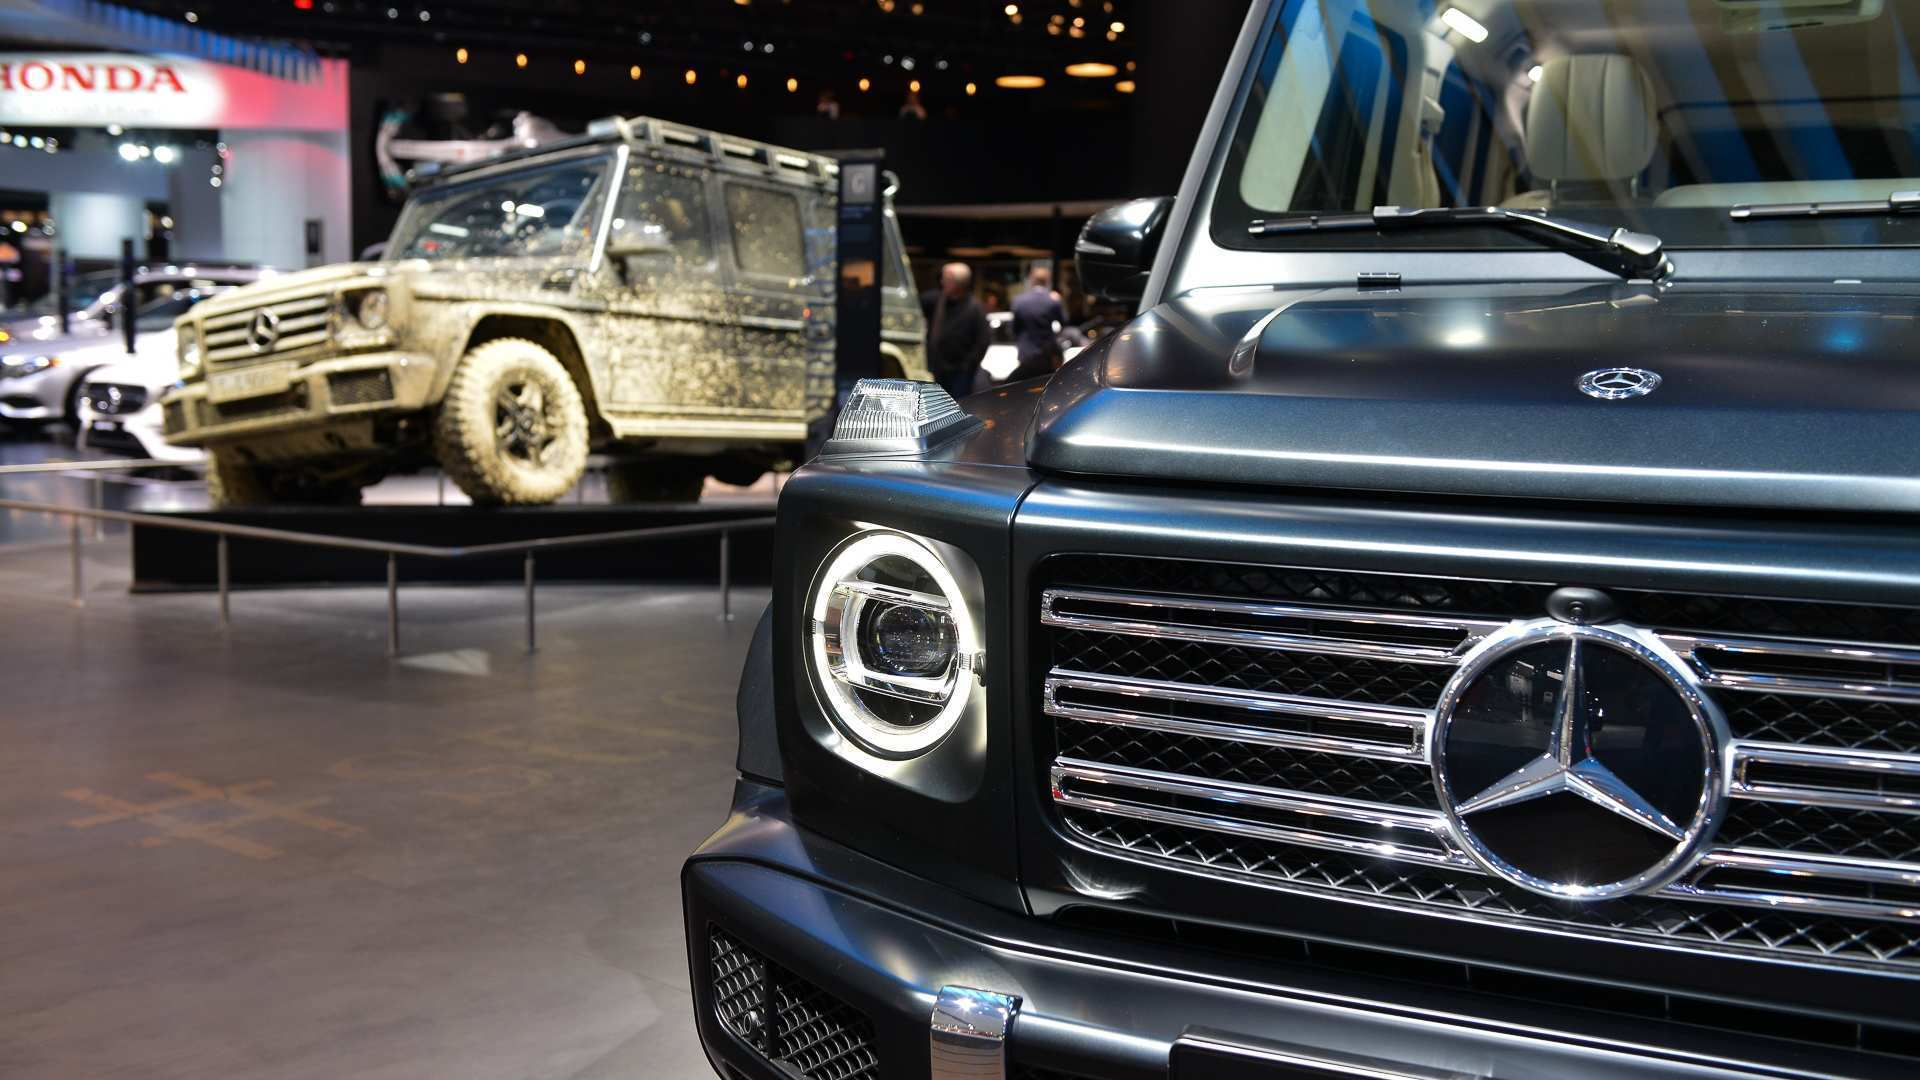 53 Concept of 2020 Mercedes G Wagon New Concept Prices for 2020 Mercedes G Wagon New Concept